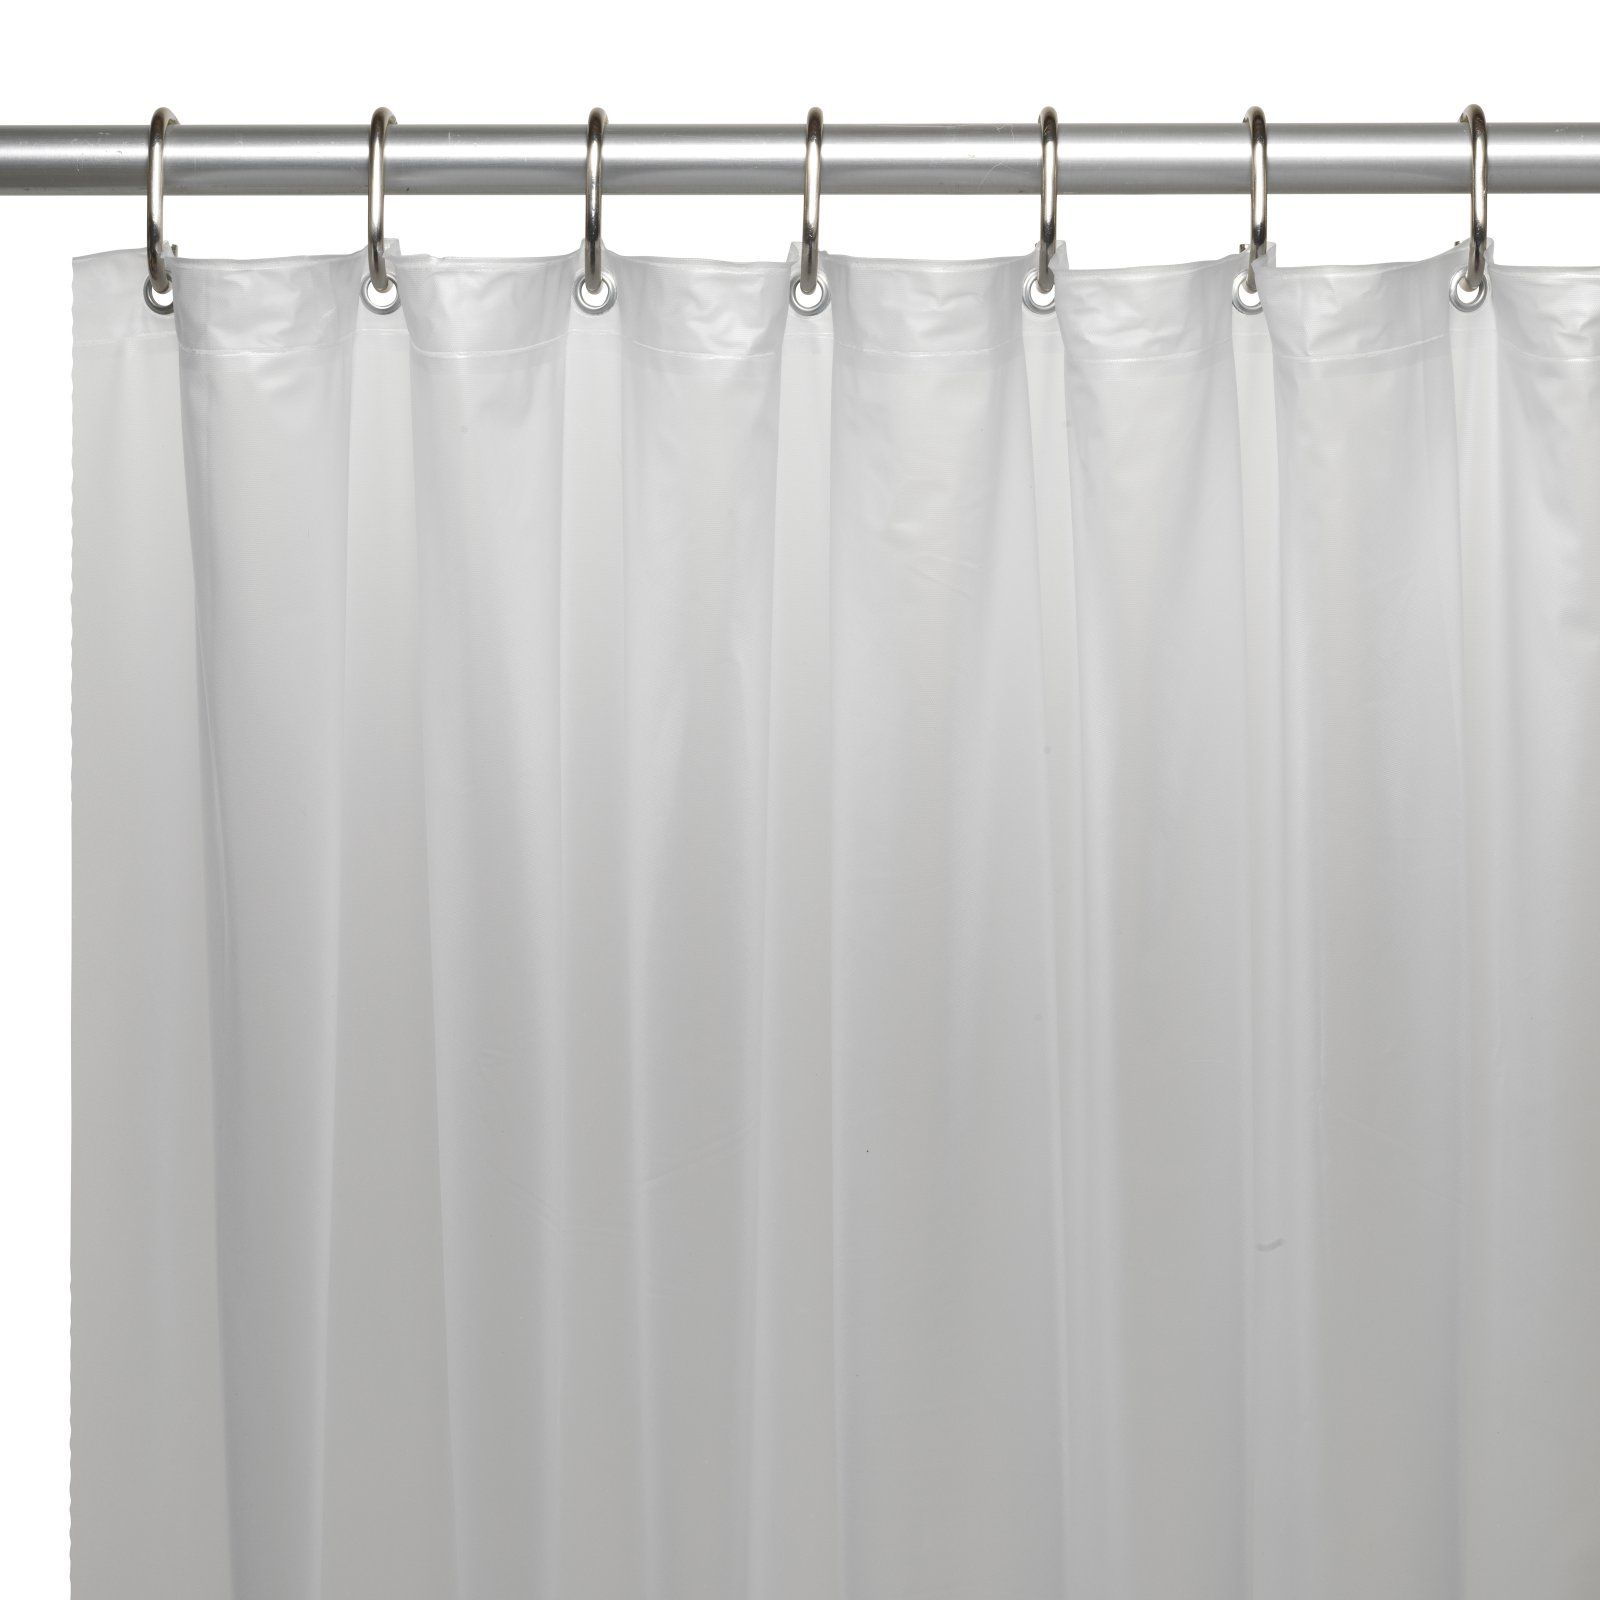 Carnation Home Fashions Premium Vinyl Shower Curtain Liner With